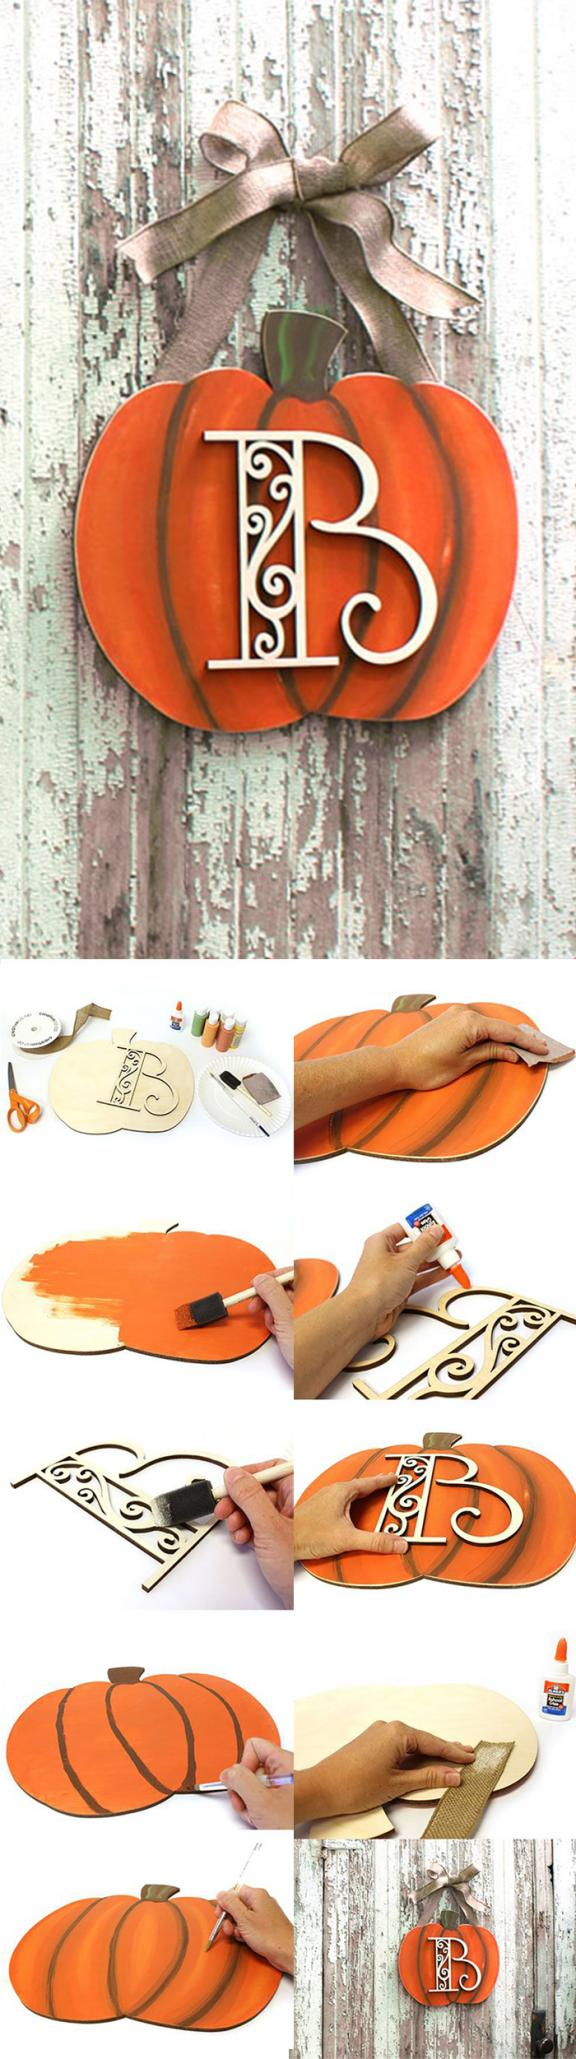 Questo DIY Fall Craft è semplicemente irresistibile